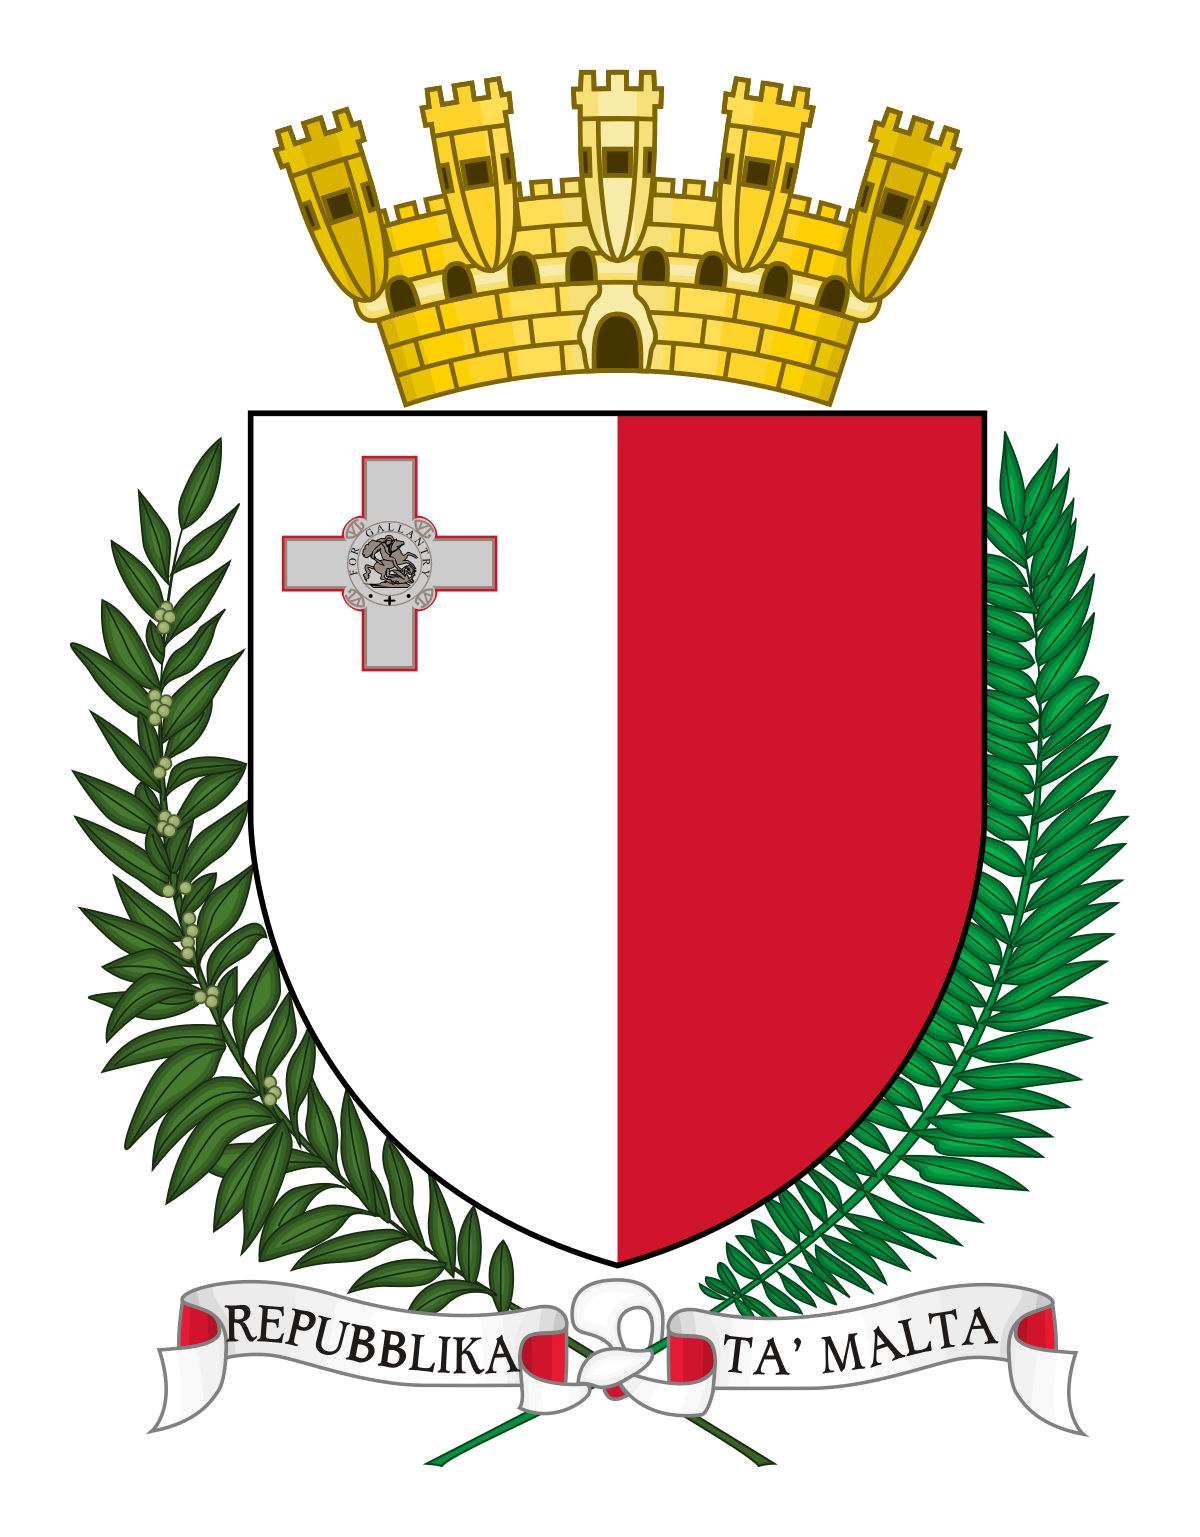 Independence clipart self government. Constitution of malta wikipedia